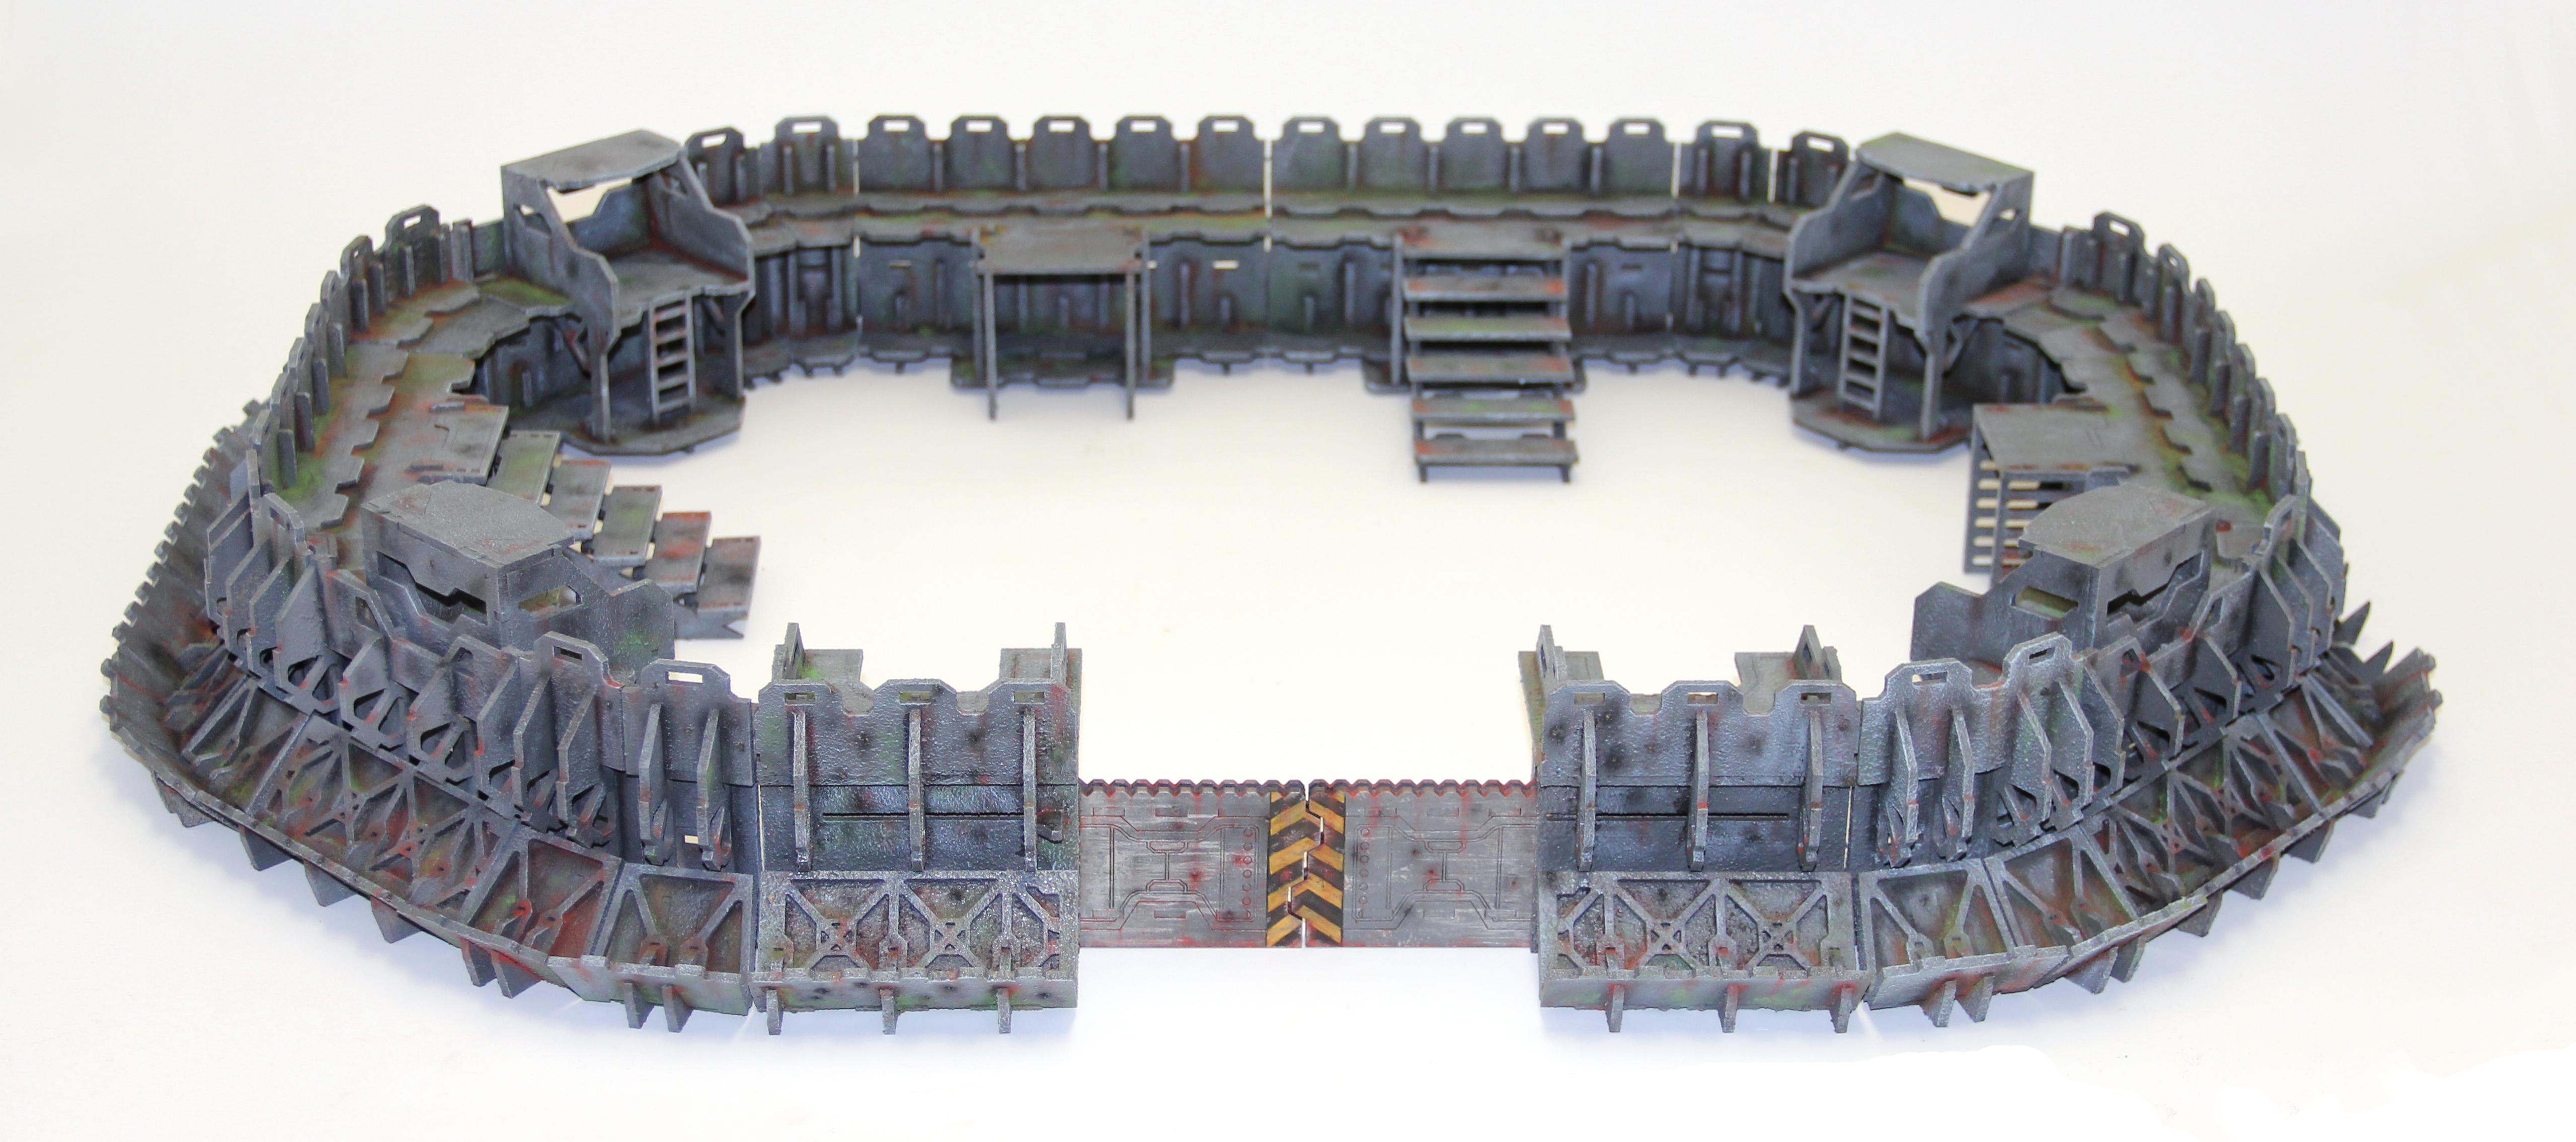 Apocalypse, Base Terrain, Emplacement, Fort, Fortress